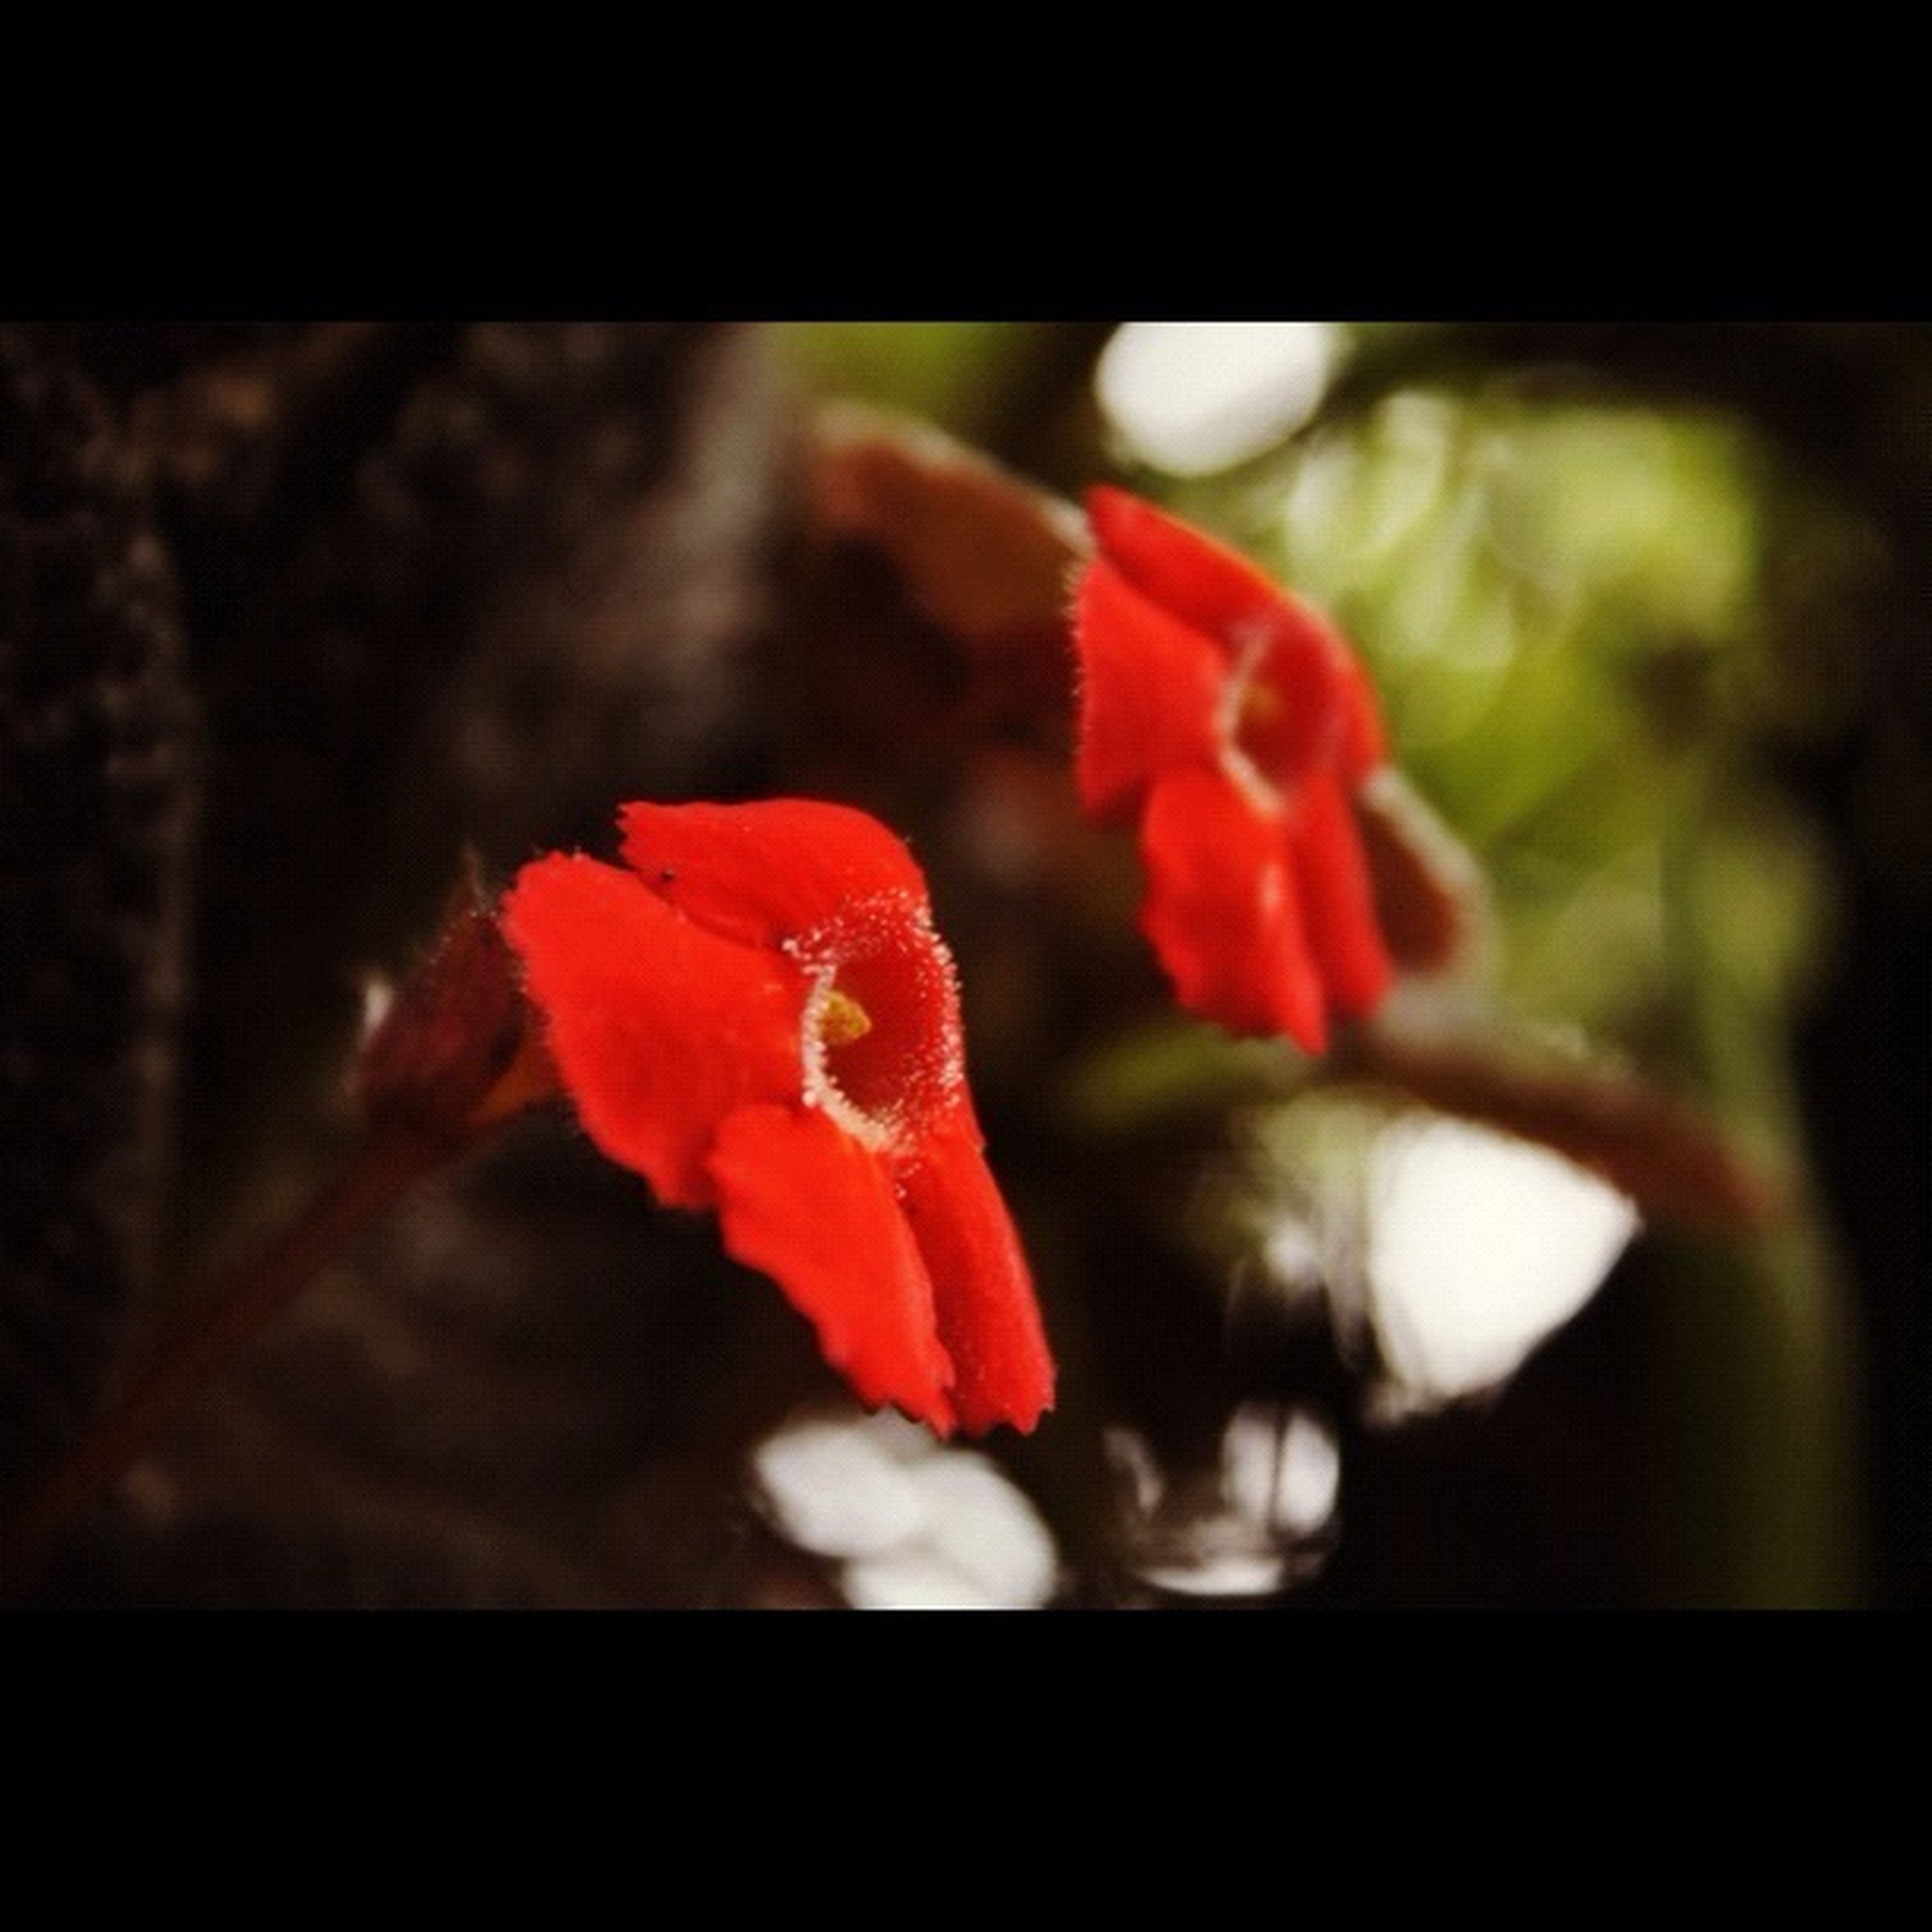 red, flower, petal, focus on foreground, fragility, close-up, transfer print, flower head, freshness, growth, plant, beauty in nature, auto post production filter, selective focus, nature, blooming, single flower, stem, orange color, day